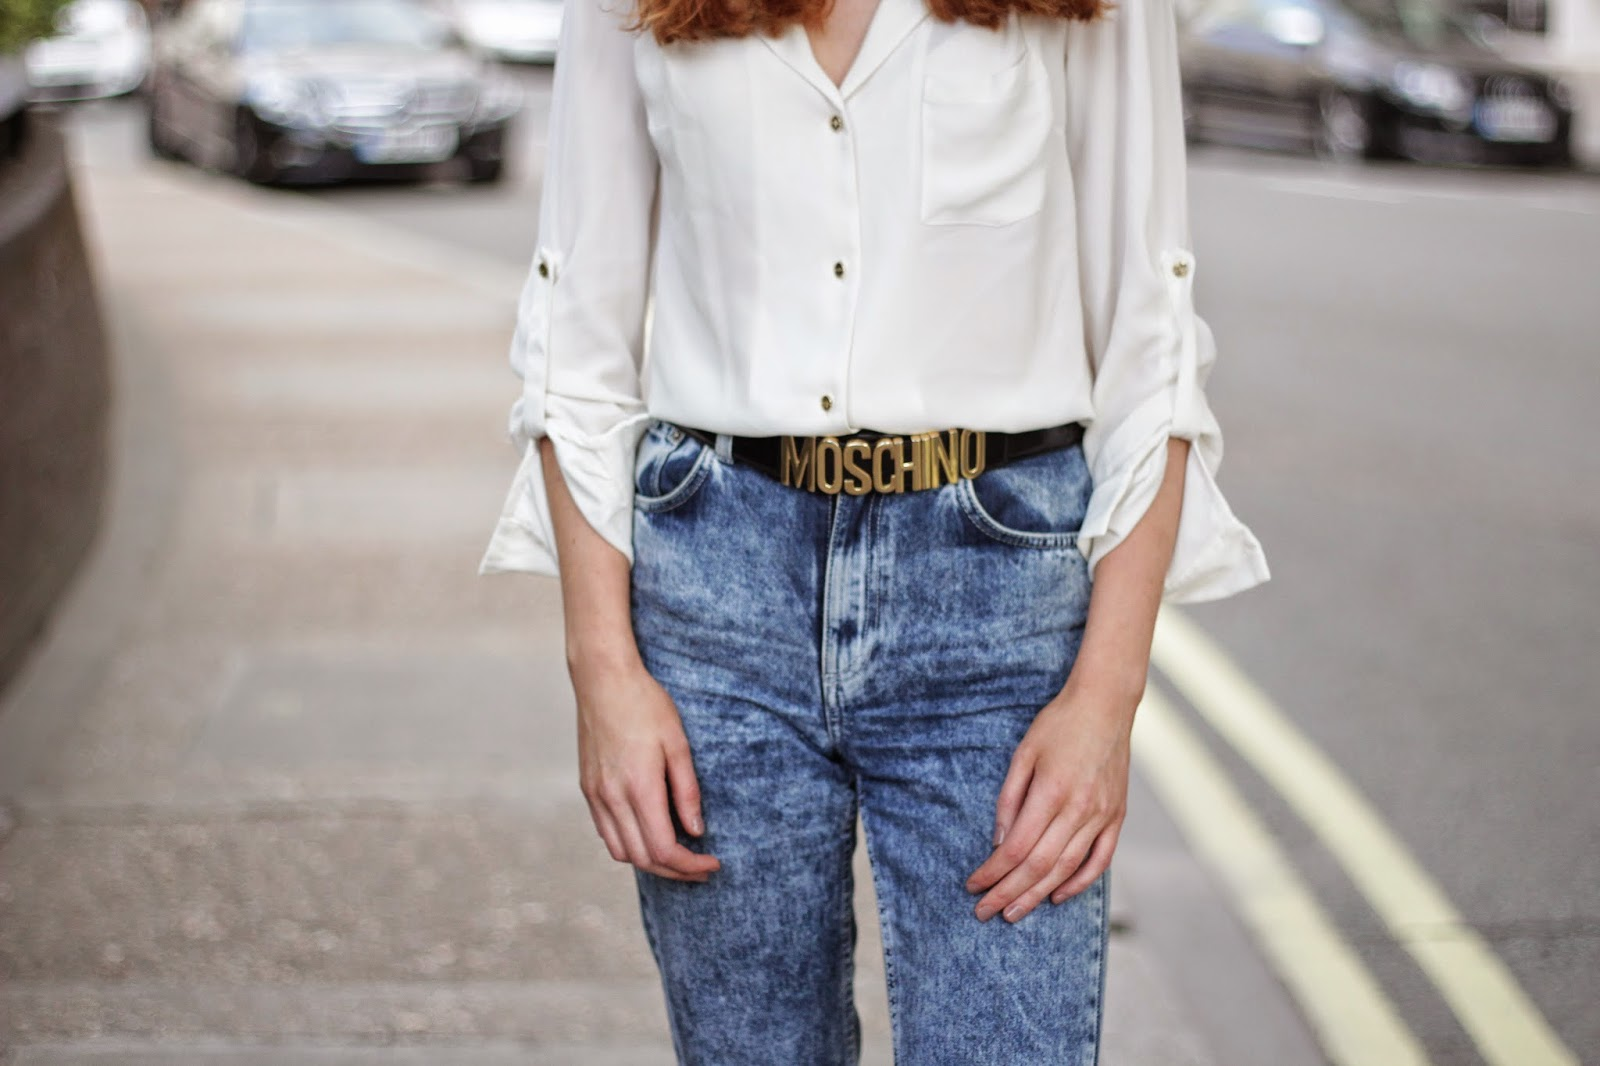 moschino belt, moschino, mum jeans, topshop jeans